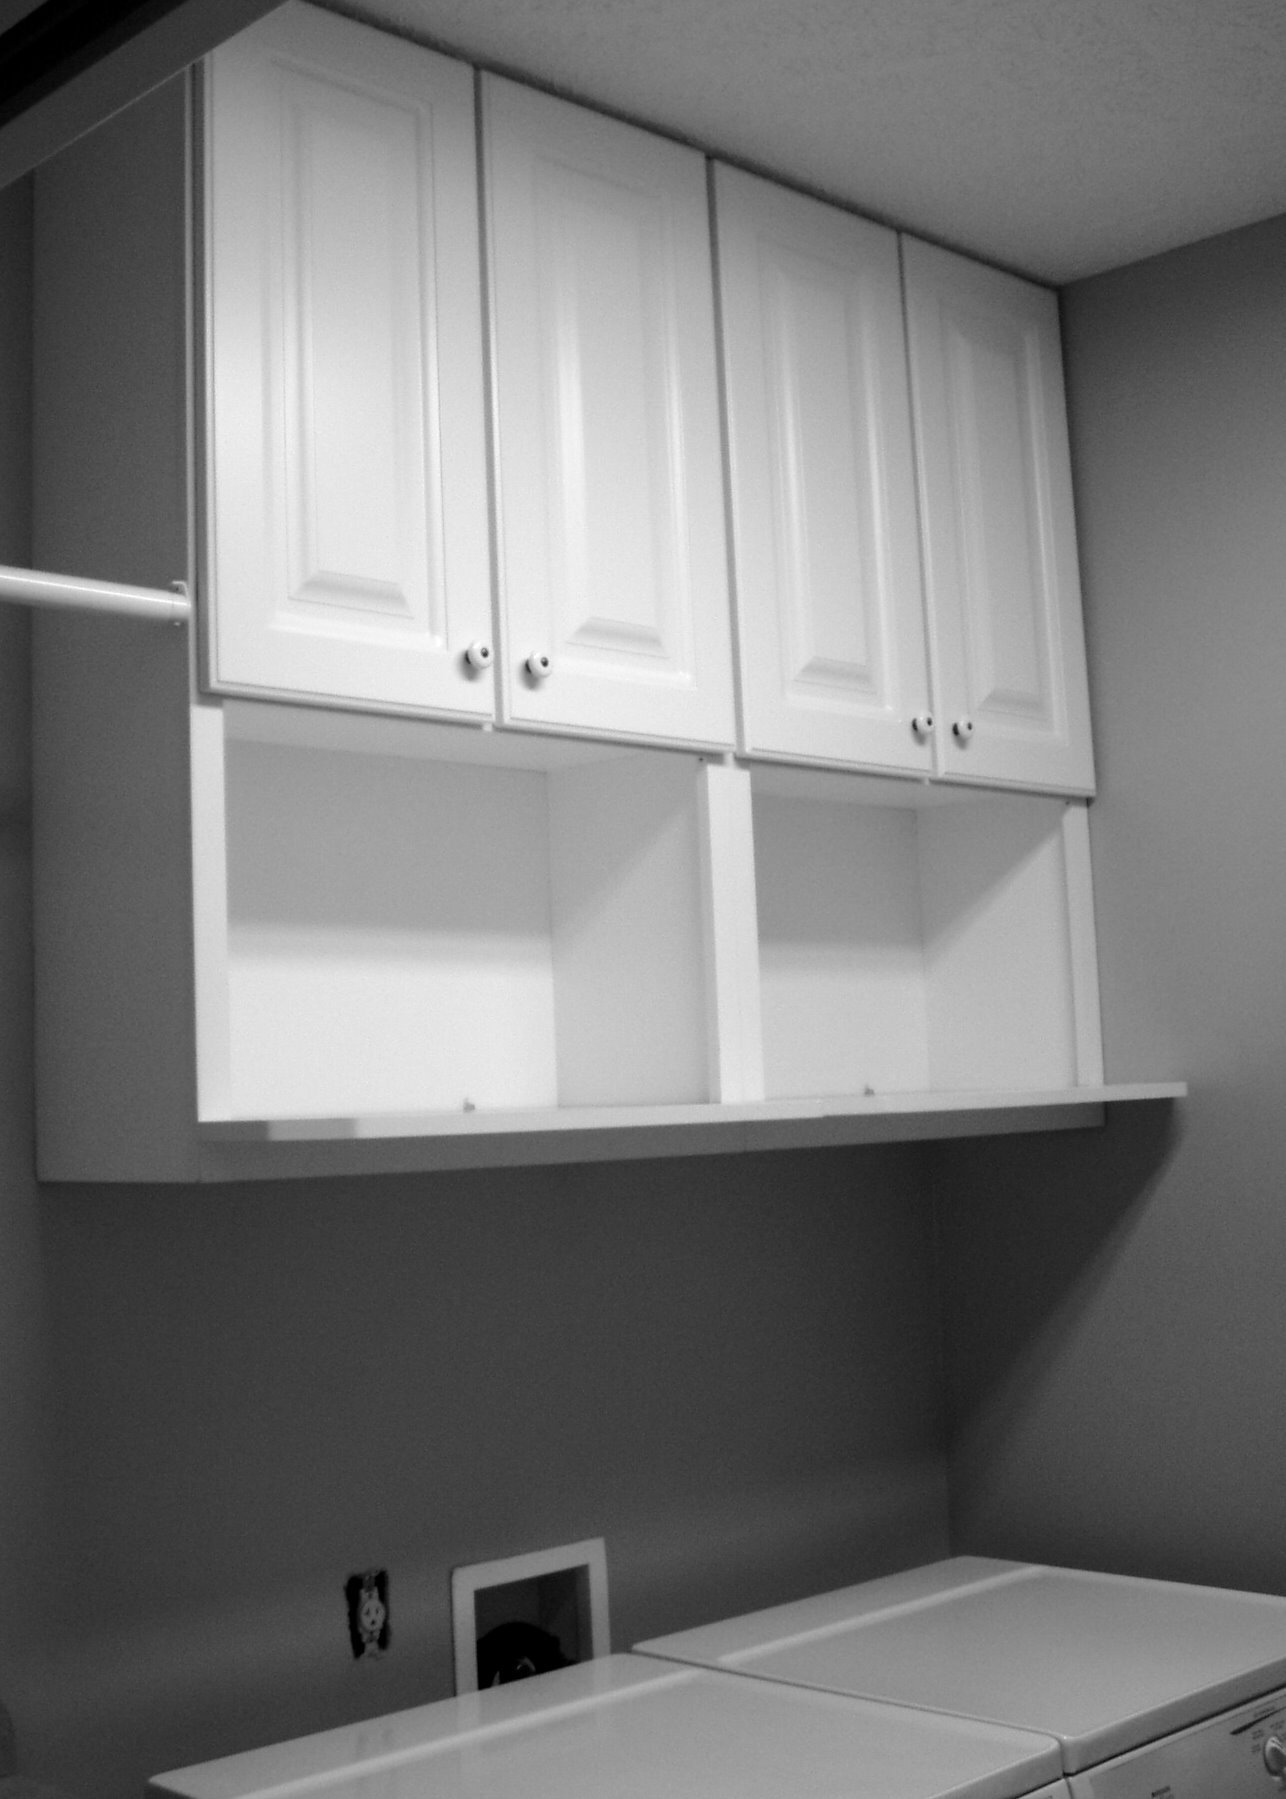 White Painted Wooden Wall Cabinets With Shelves Designed By IKEA